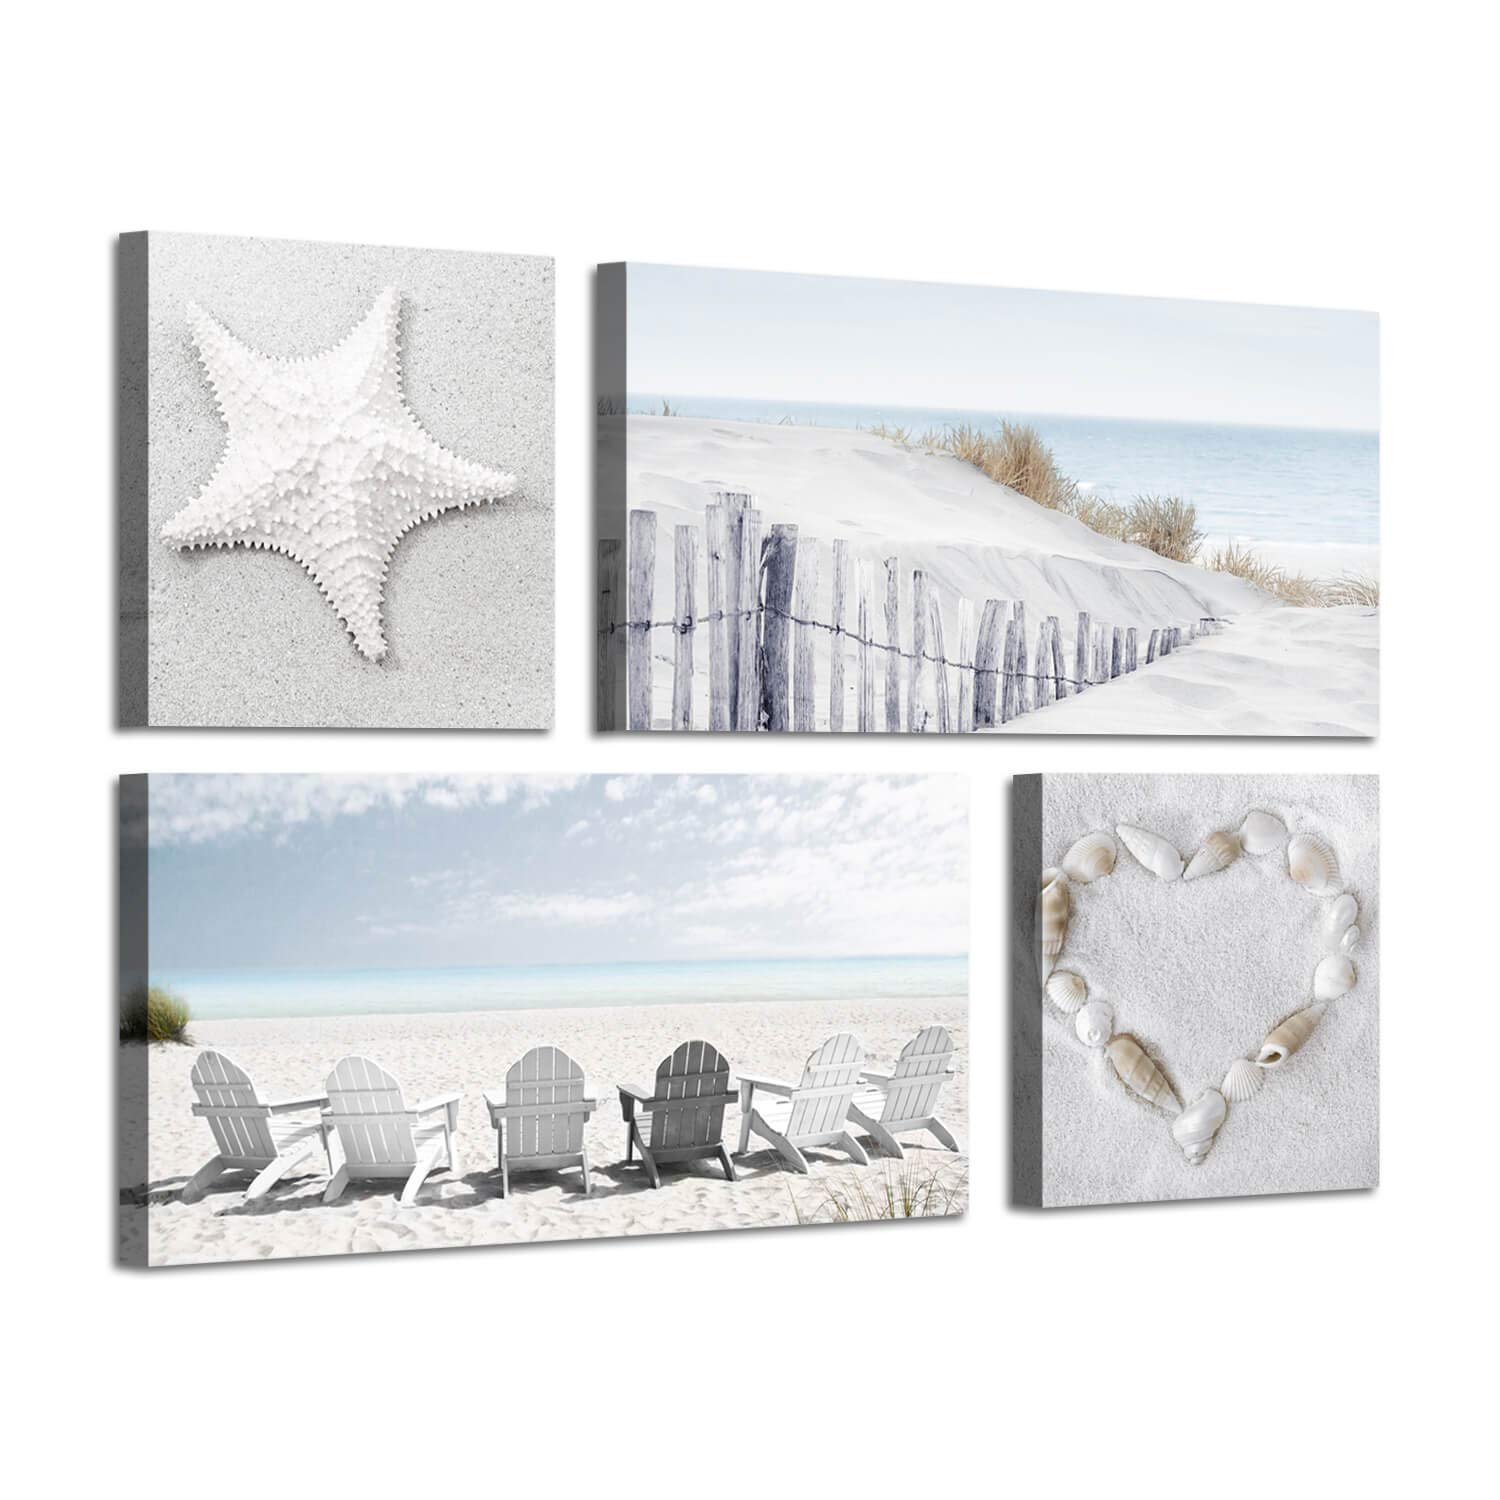 "Beach Wall Art Seascape Print: Starfish & Chair on Seaside Giclee Artwork Painting on Canvas for Wall Decor (12""x12""x2 Panels+24""x12""x2 Panels)"